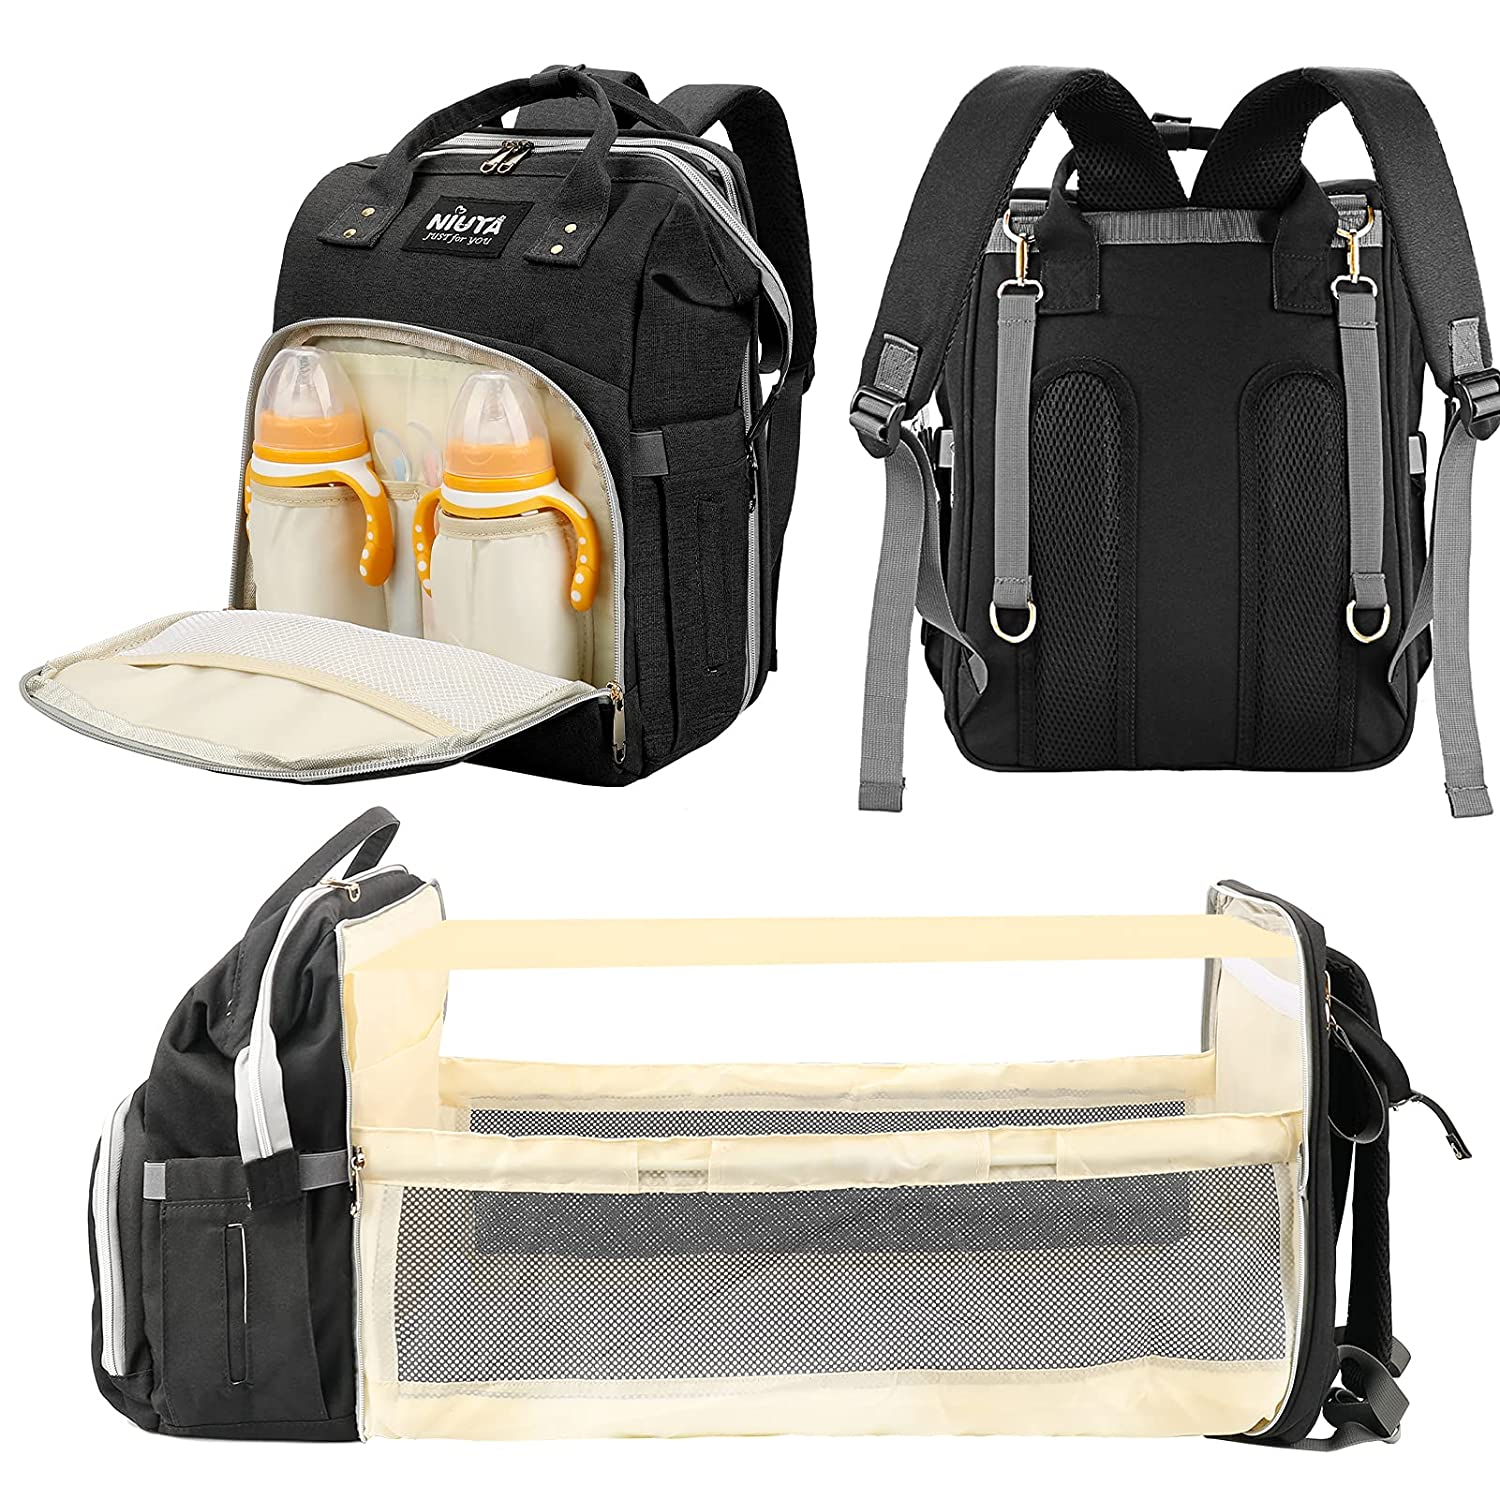 Baby Diaper Bag with Changing Station - Multi-Purpose mom and dad Bag for Traveling, Large Capacity Baby Diaper Backpack